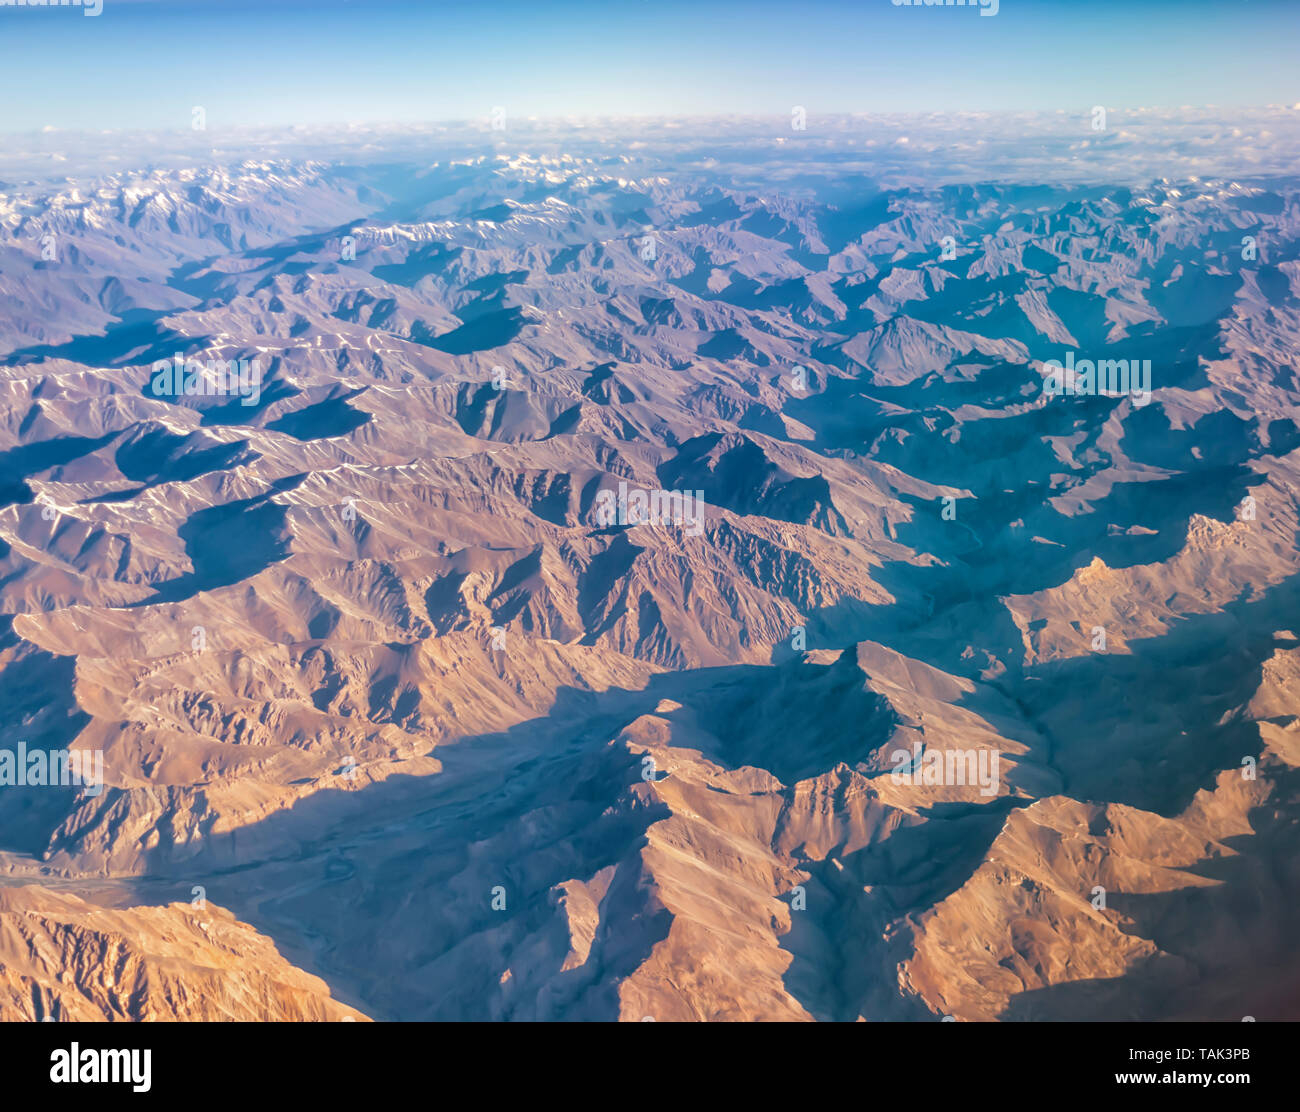 An aerial view of the barren mountains of the Zanskar range of inner Himalayas in India. Taken from a plane on an early July morning. - Stock Image